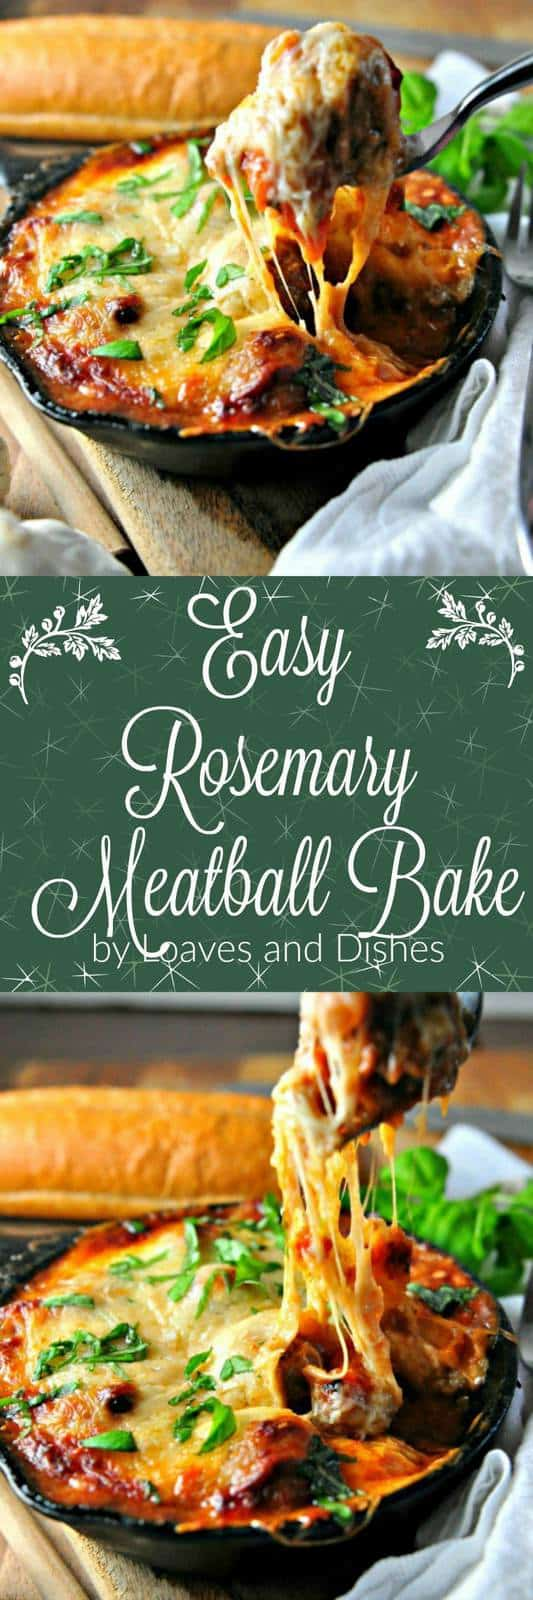 Try this SIMPLE recipe for the best meatballs you will ever taste! Full instructions, easy to follow. Eye Candy for sure!